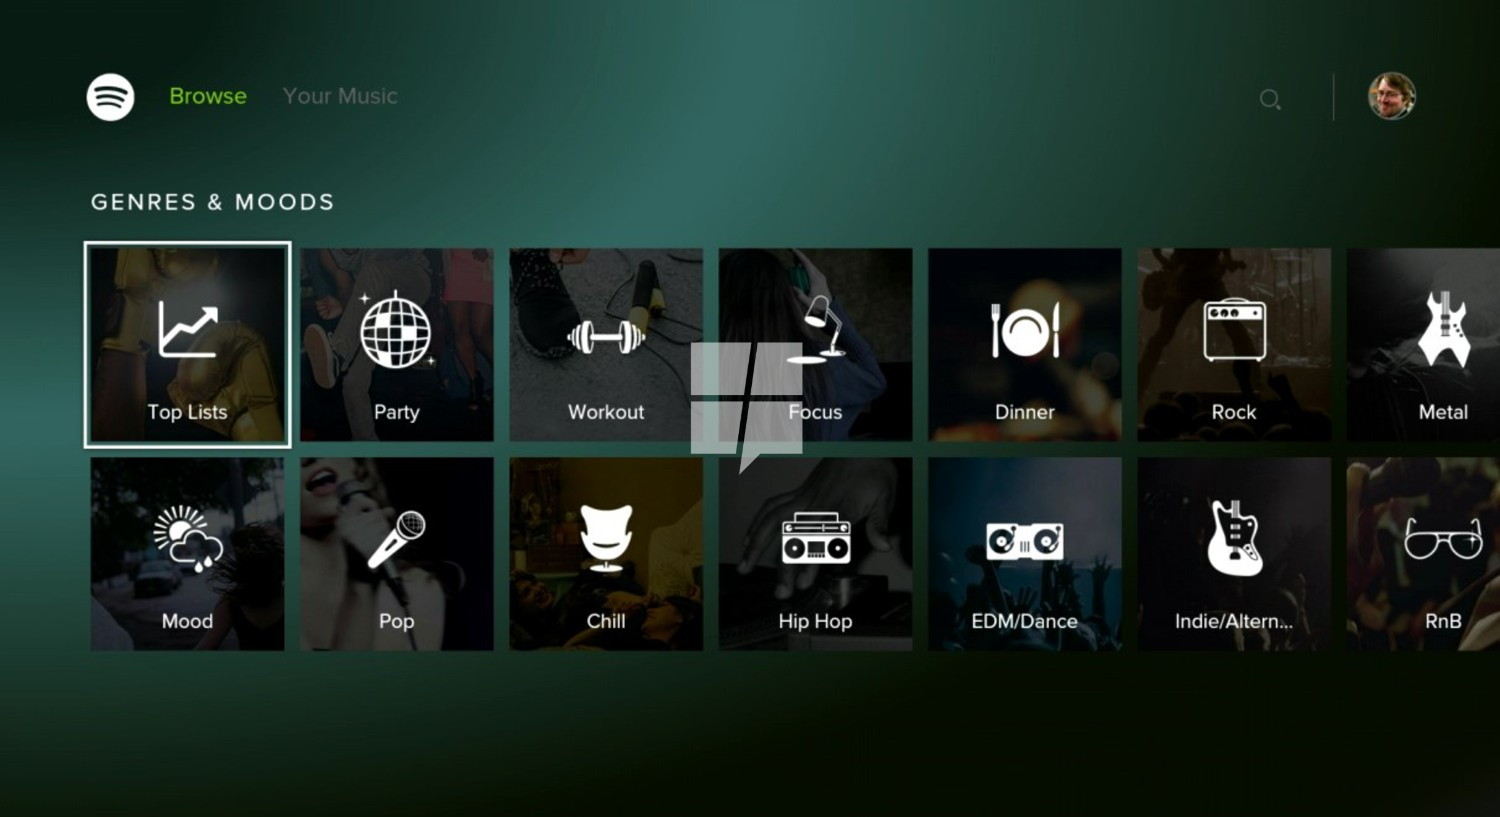 spotify on xbox one erste screenshots der app. Black Bedroom Furniture Sets. Home Design Ideas